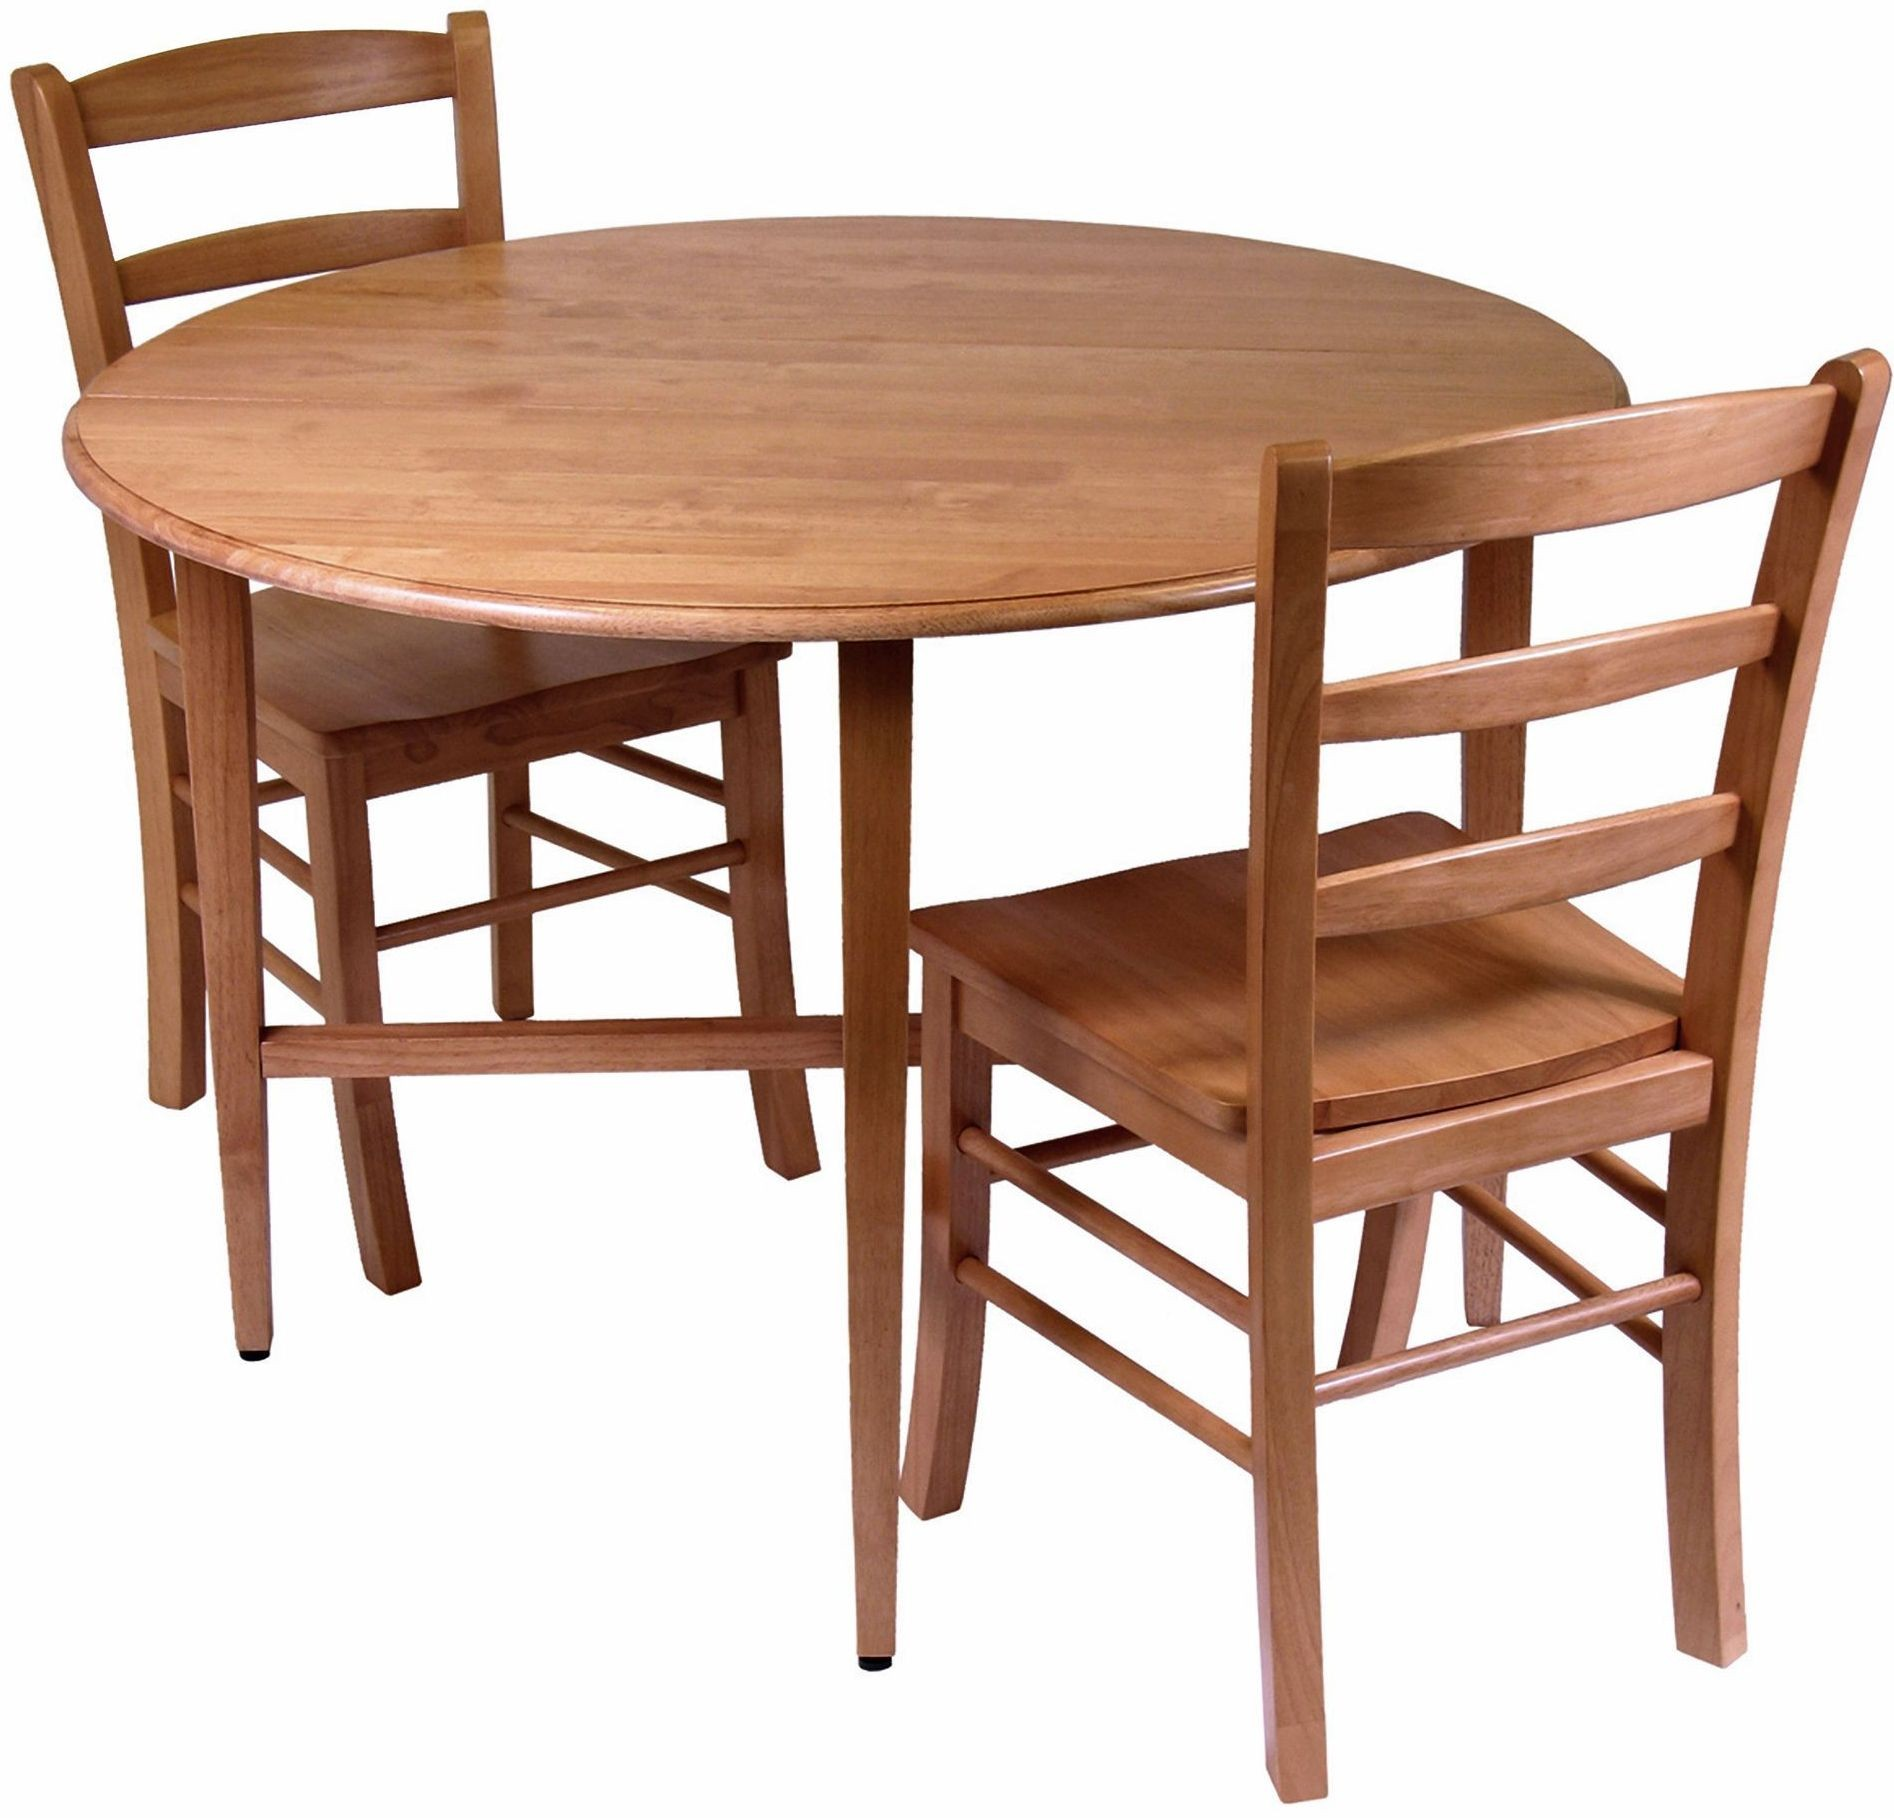 Hannah round 42 double drop leaf gate leg dining room set for Round dining room sets with leaf